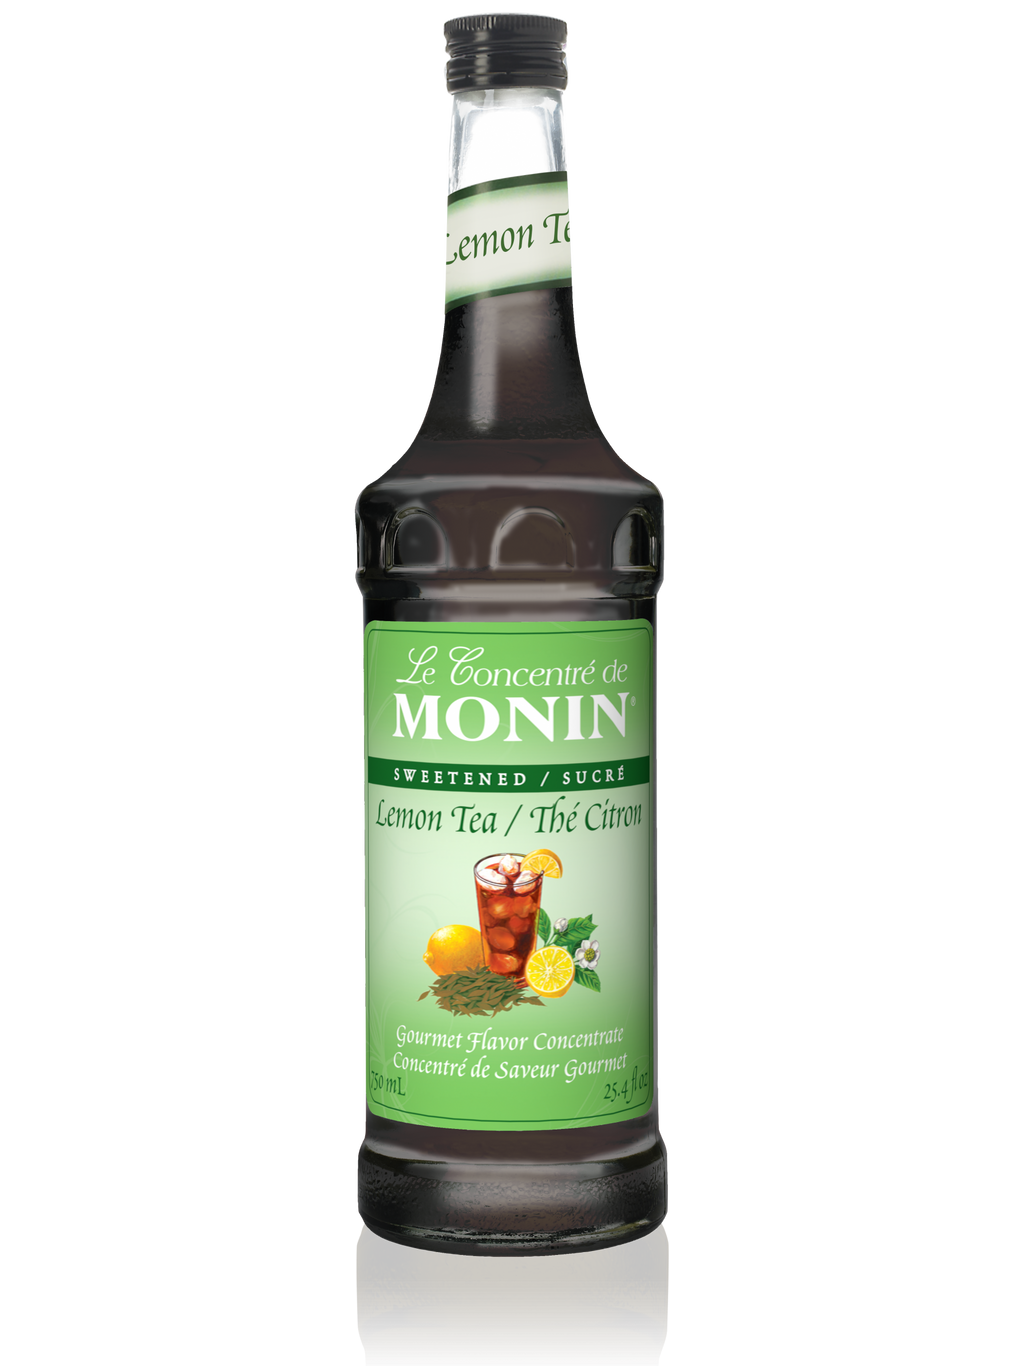 Monin Lemon Tea Concentrate | Beanwise